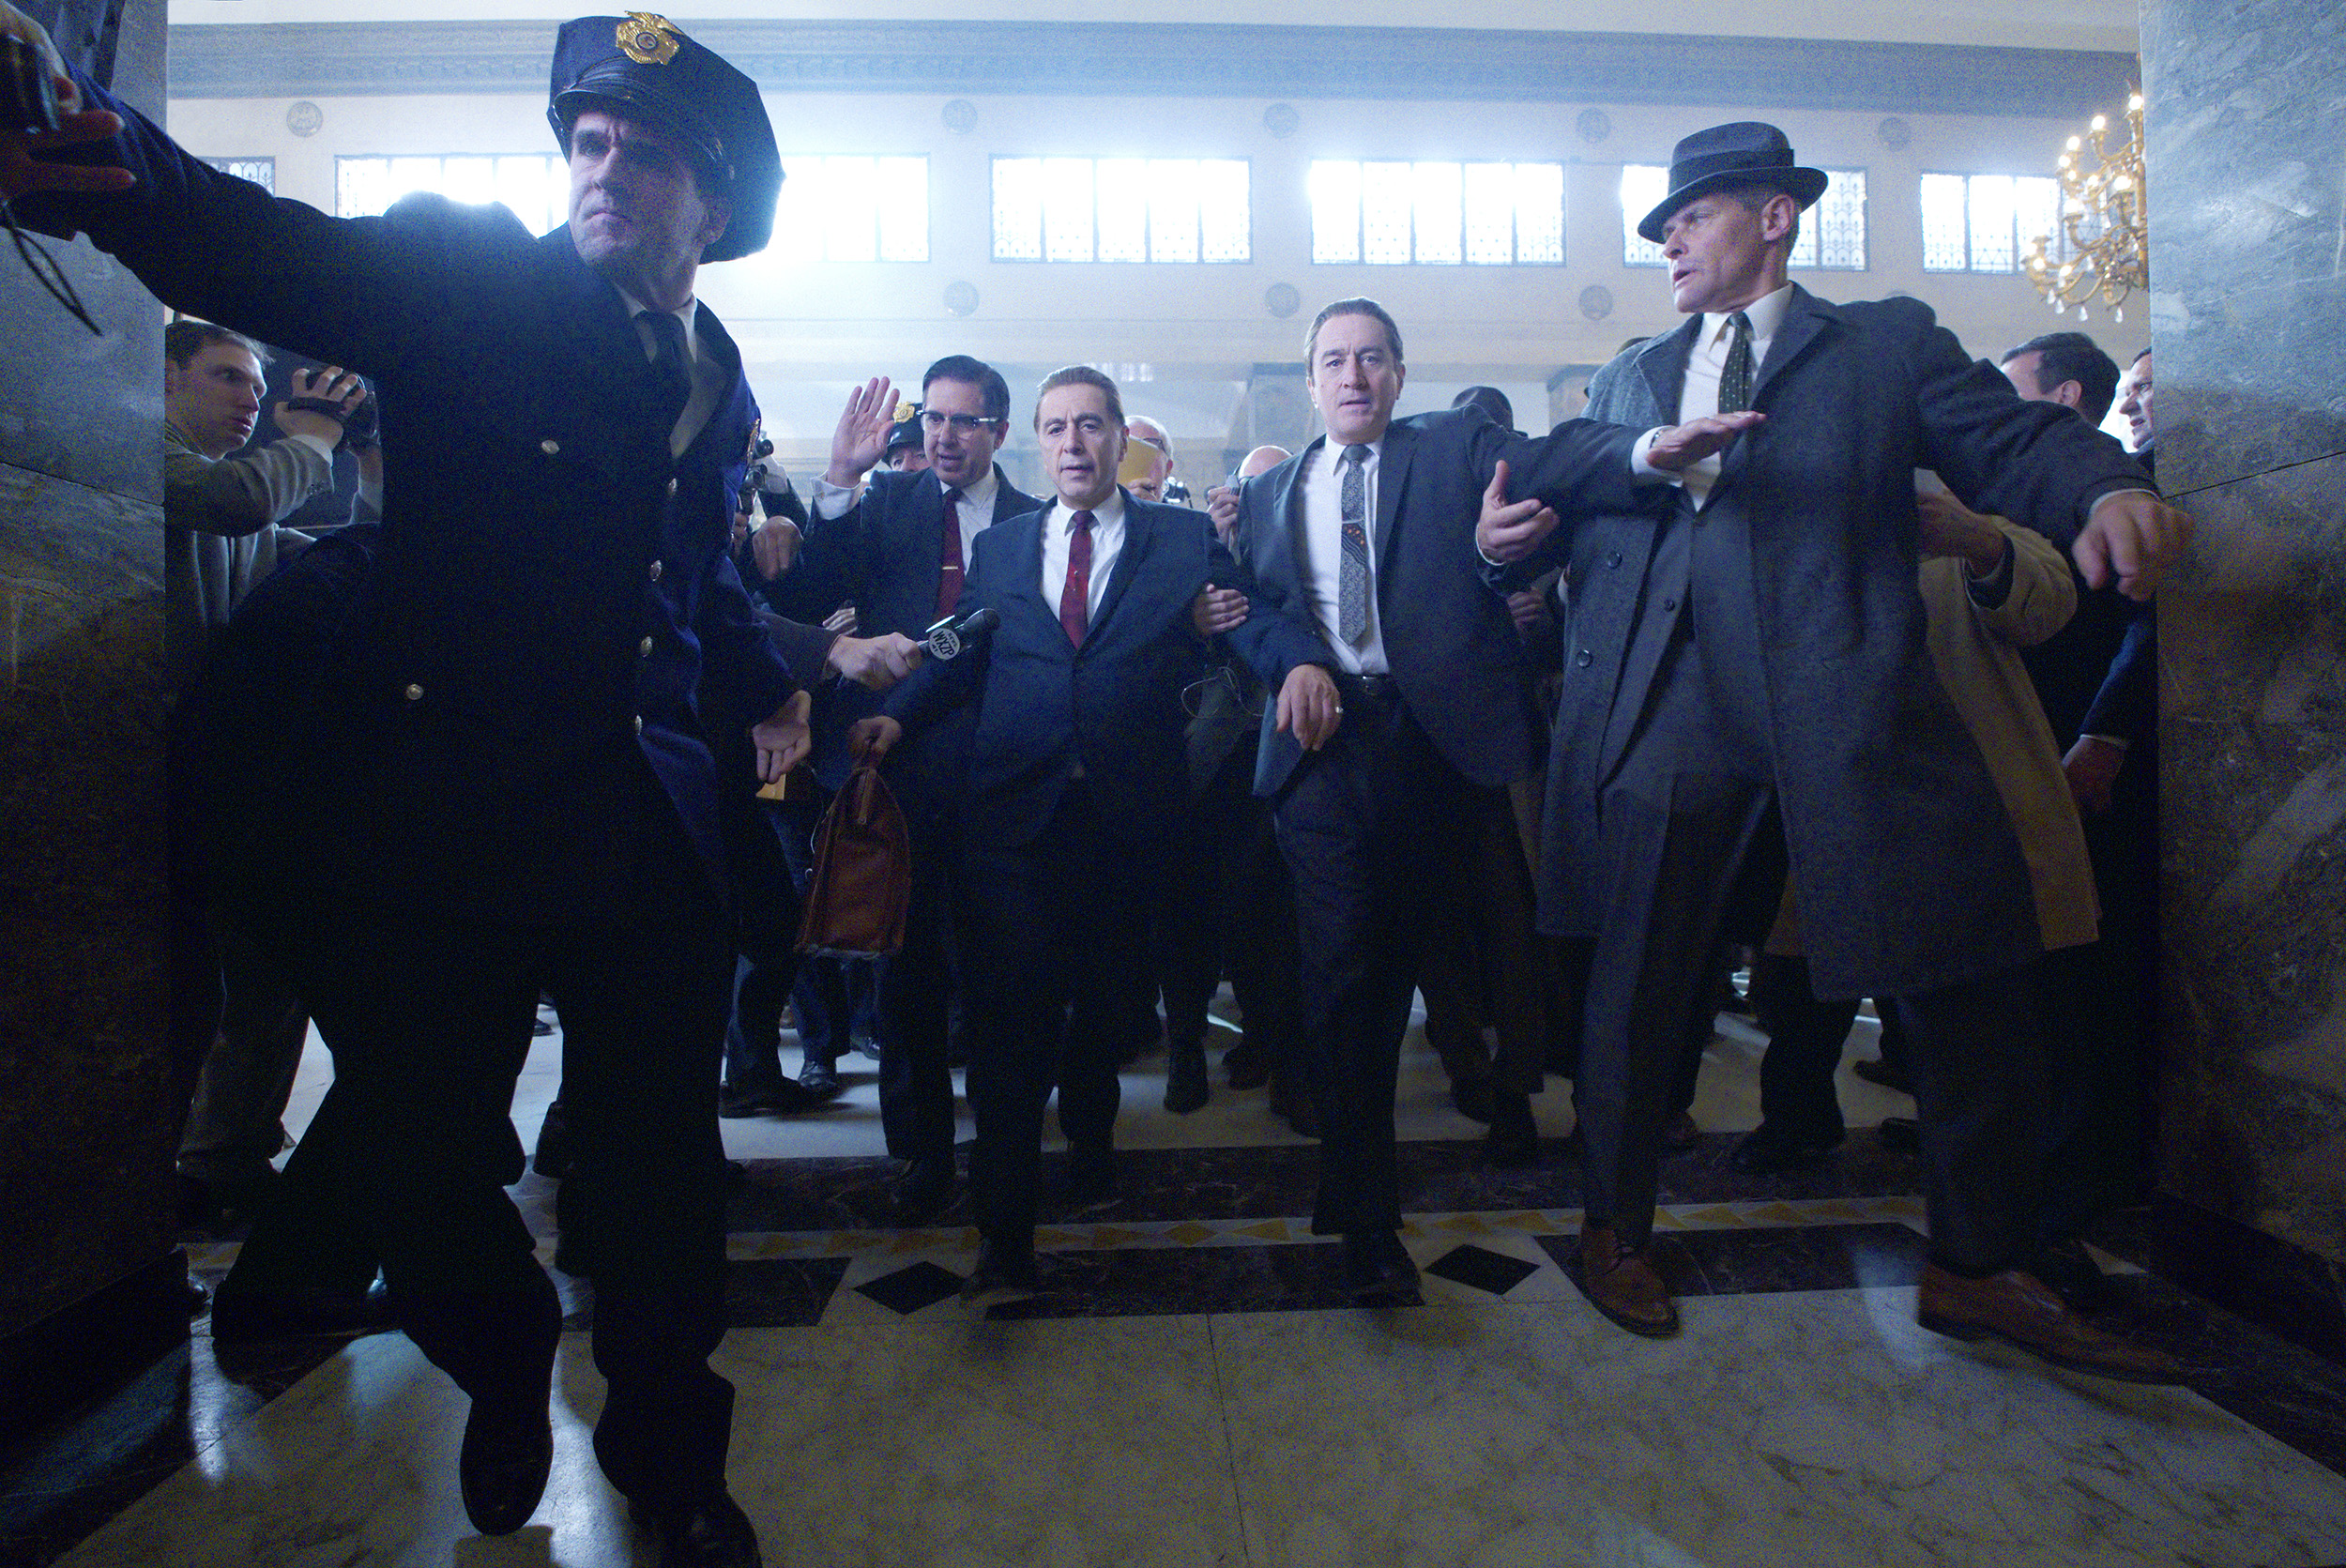 Netflix S The Irishman Directed By Martin Scorsese Is About Much More Than Jimmy Hoffa